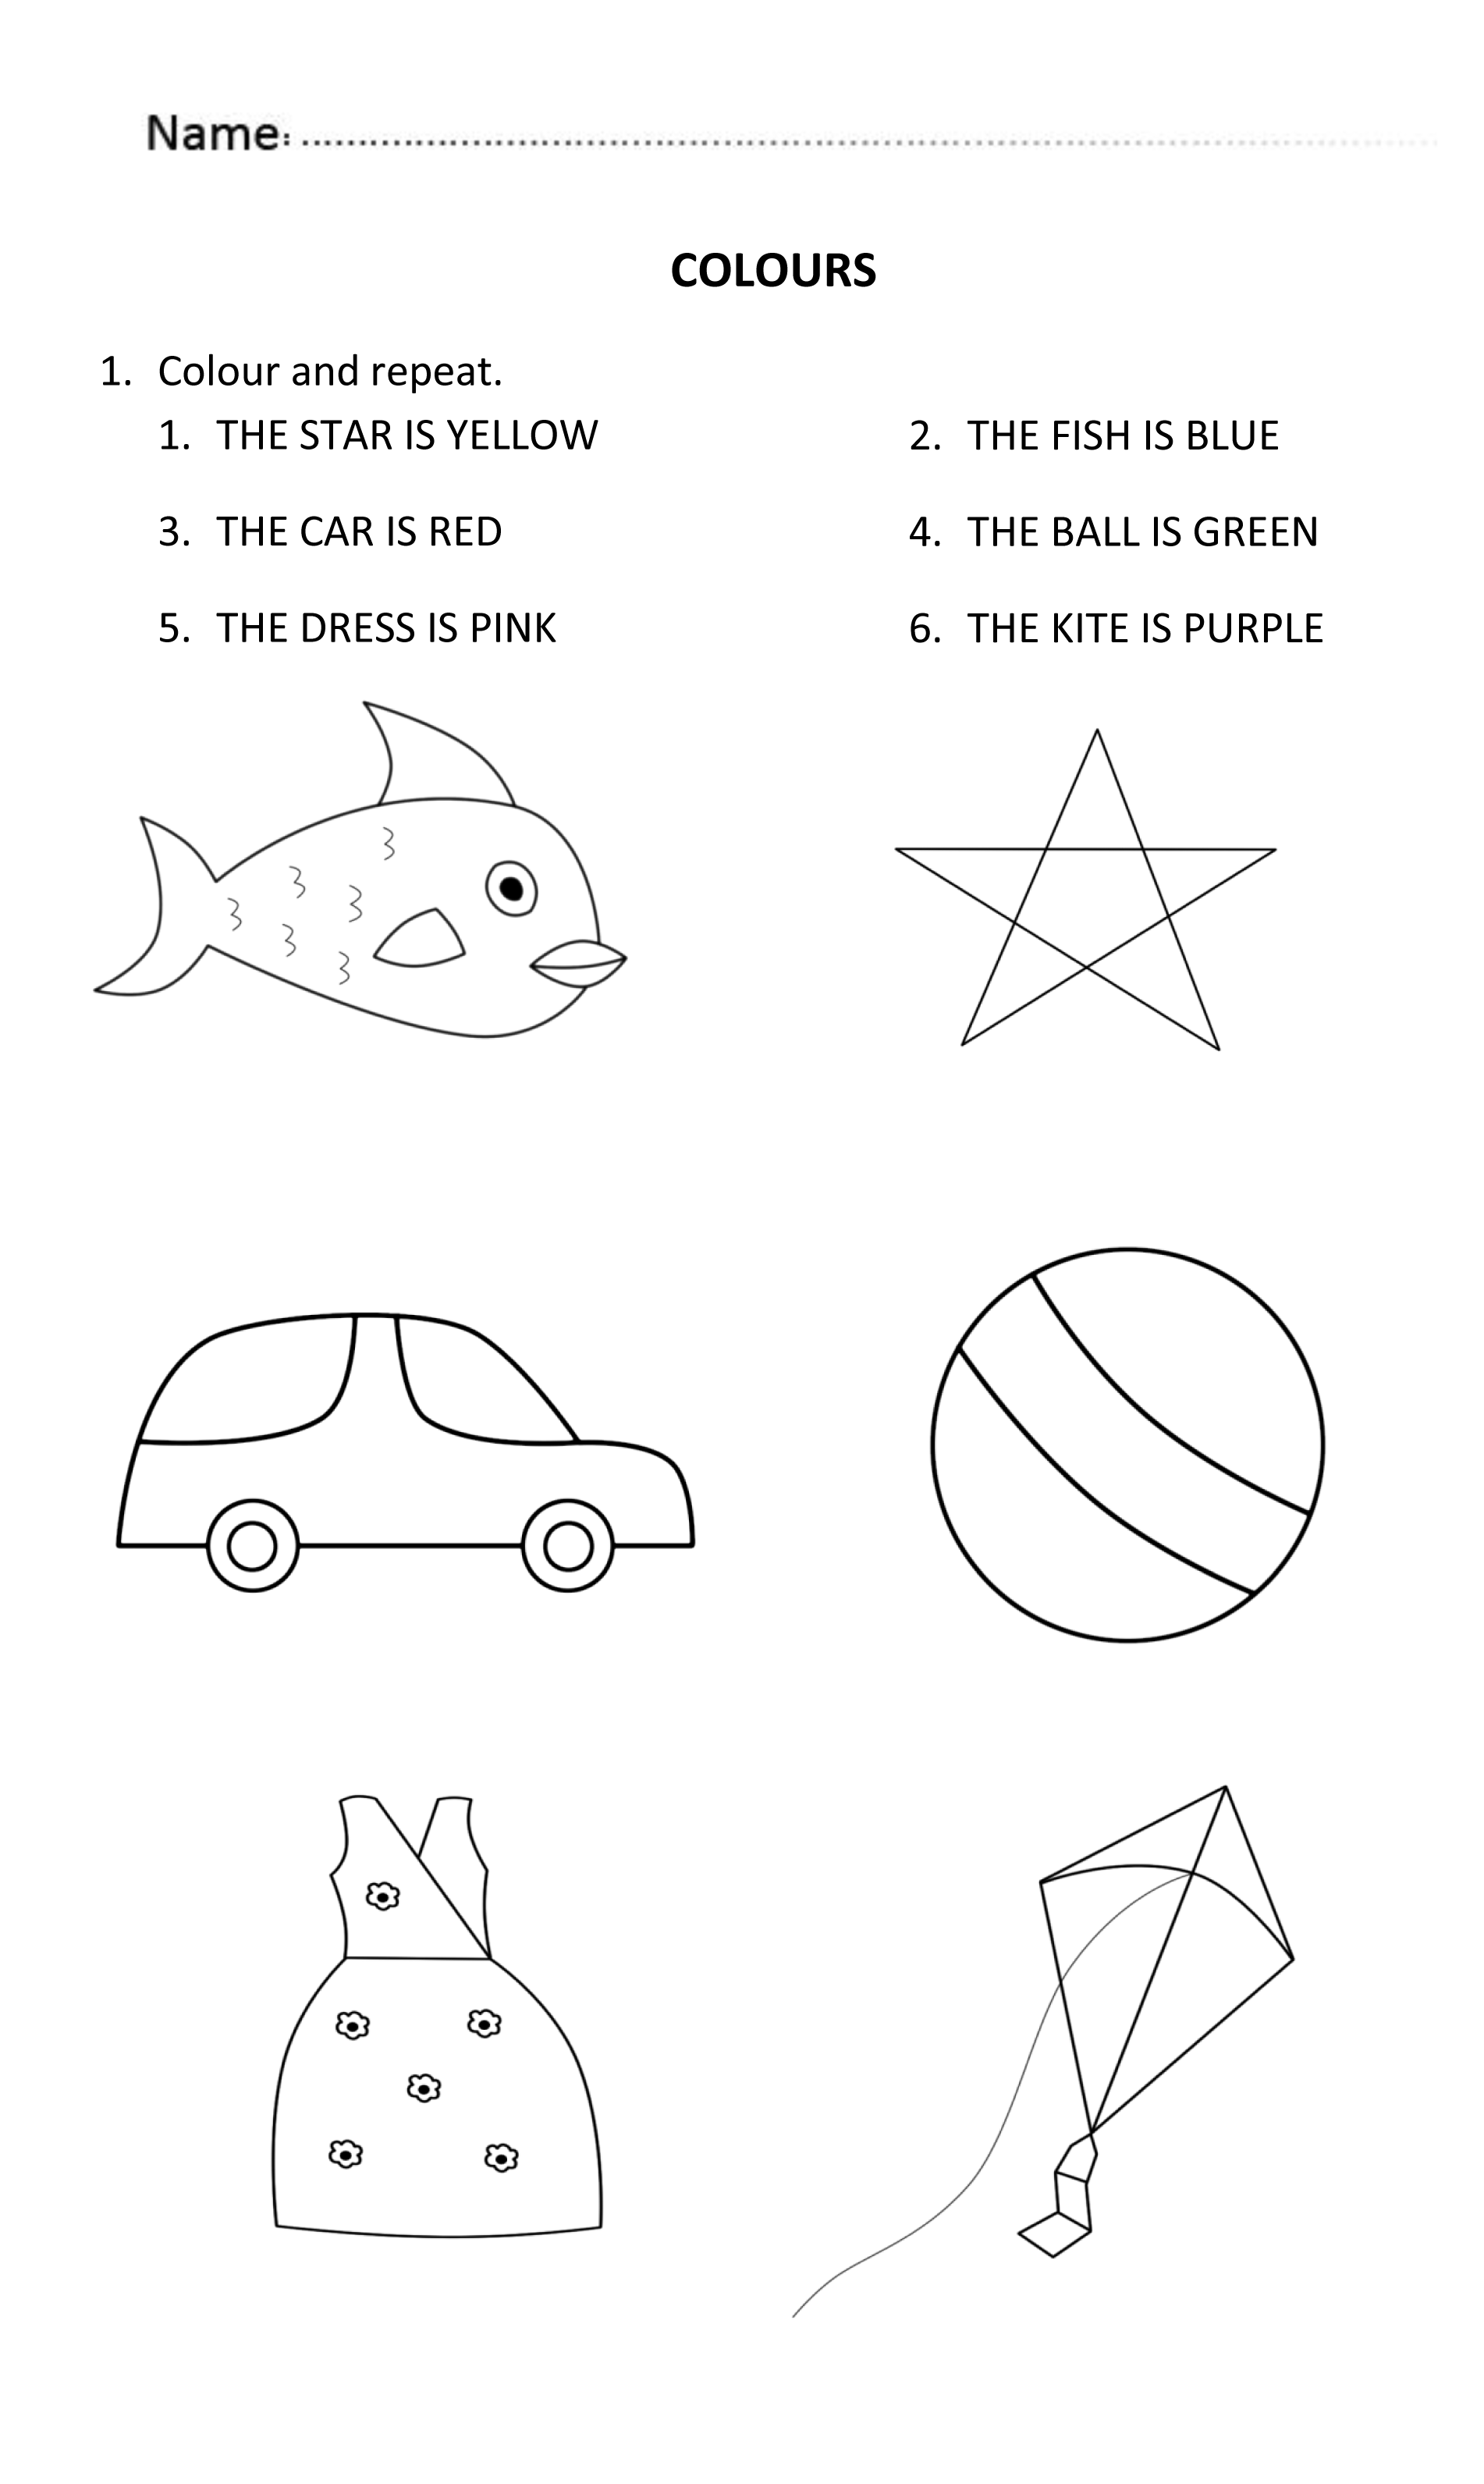 Colours Worksheet For 5 And 6 Years Old. #learningcolours